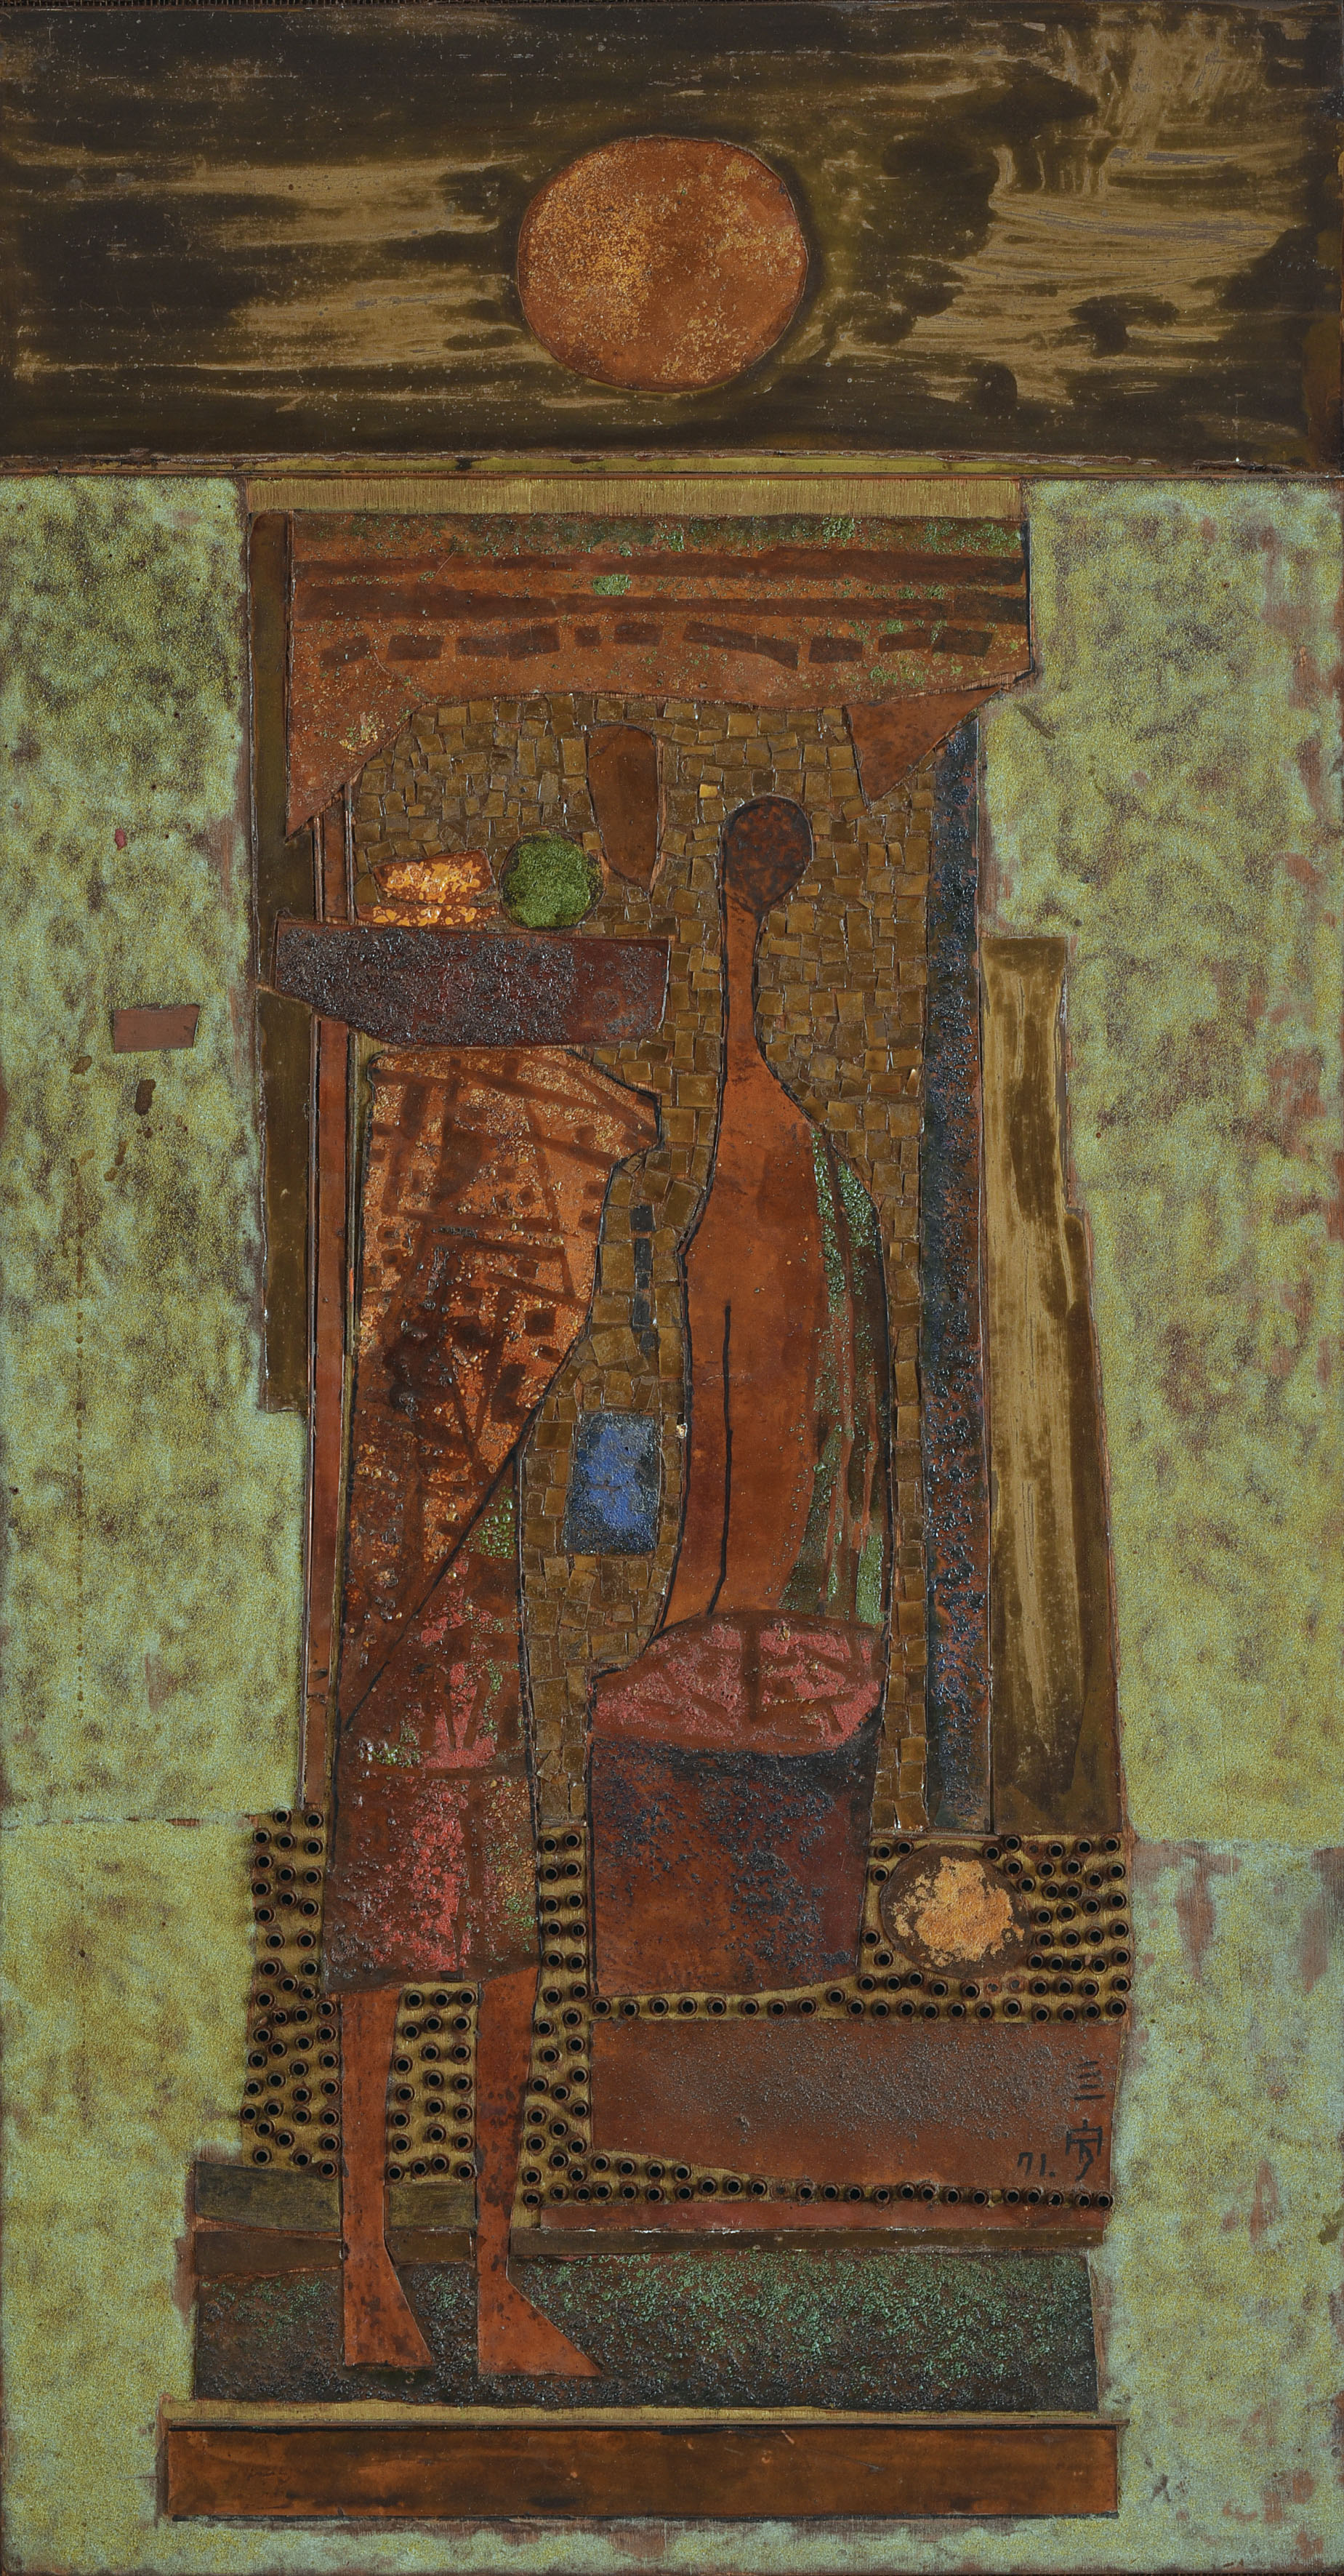 Ahmad Sadali, Untitled (Landscape), oil on canvas, 64 cm, 1969